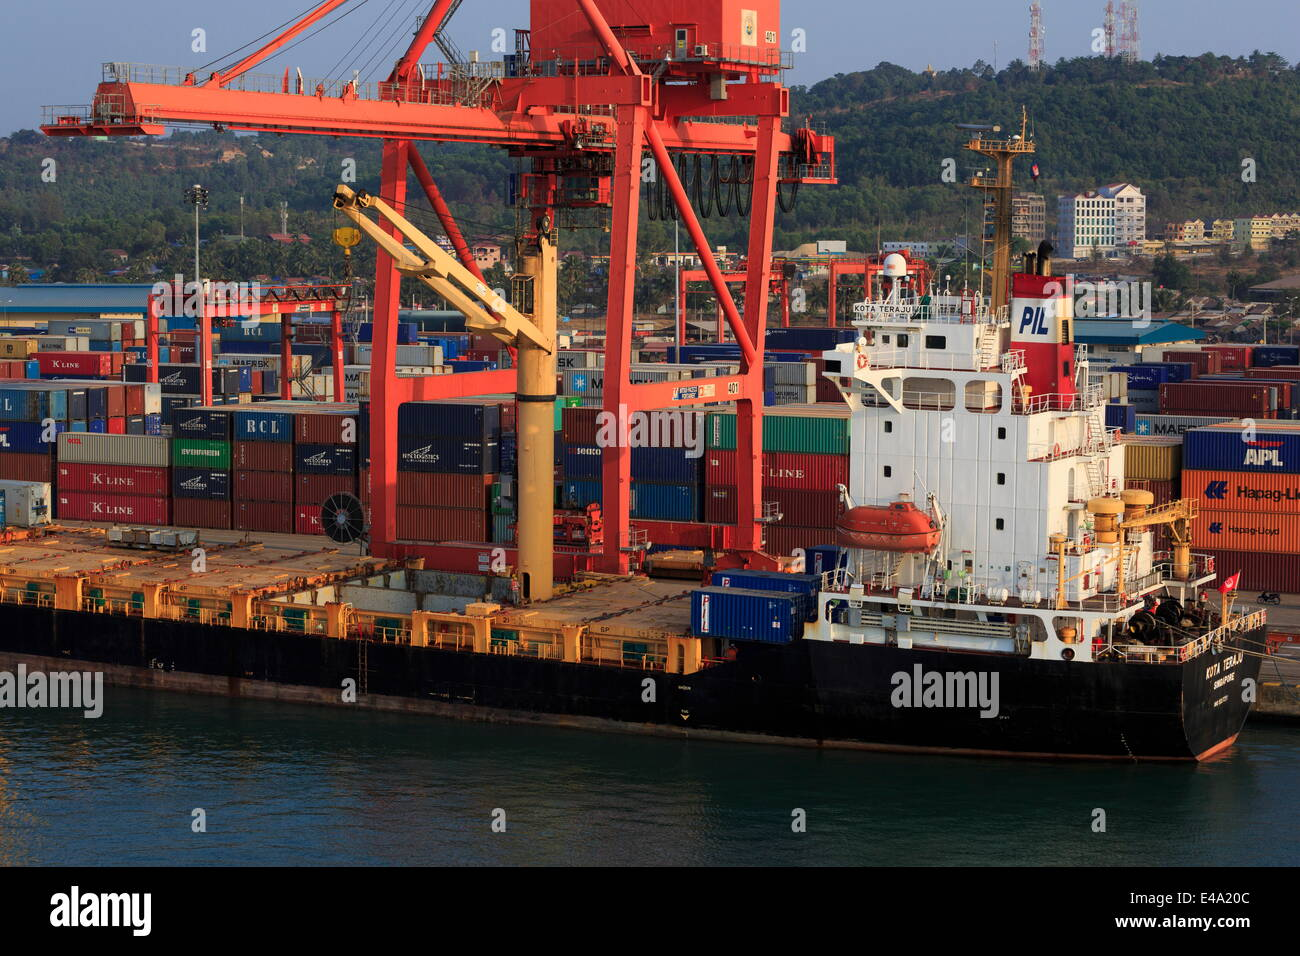 Container ship in Sihanoukville Port, Sihanouk Province, Cambodia, Indochina, Southeast Asia, Asia - Stock Image